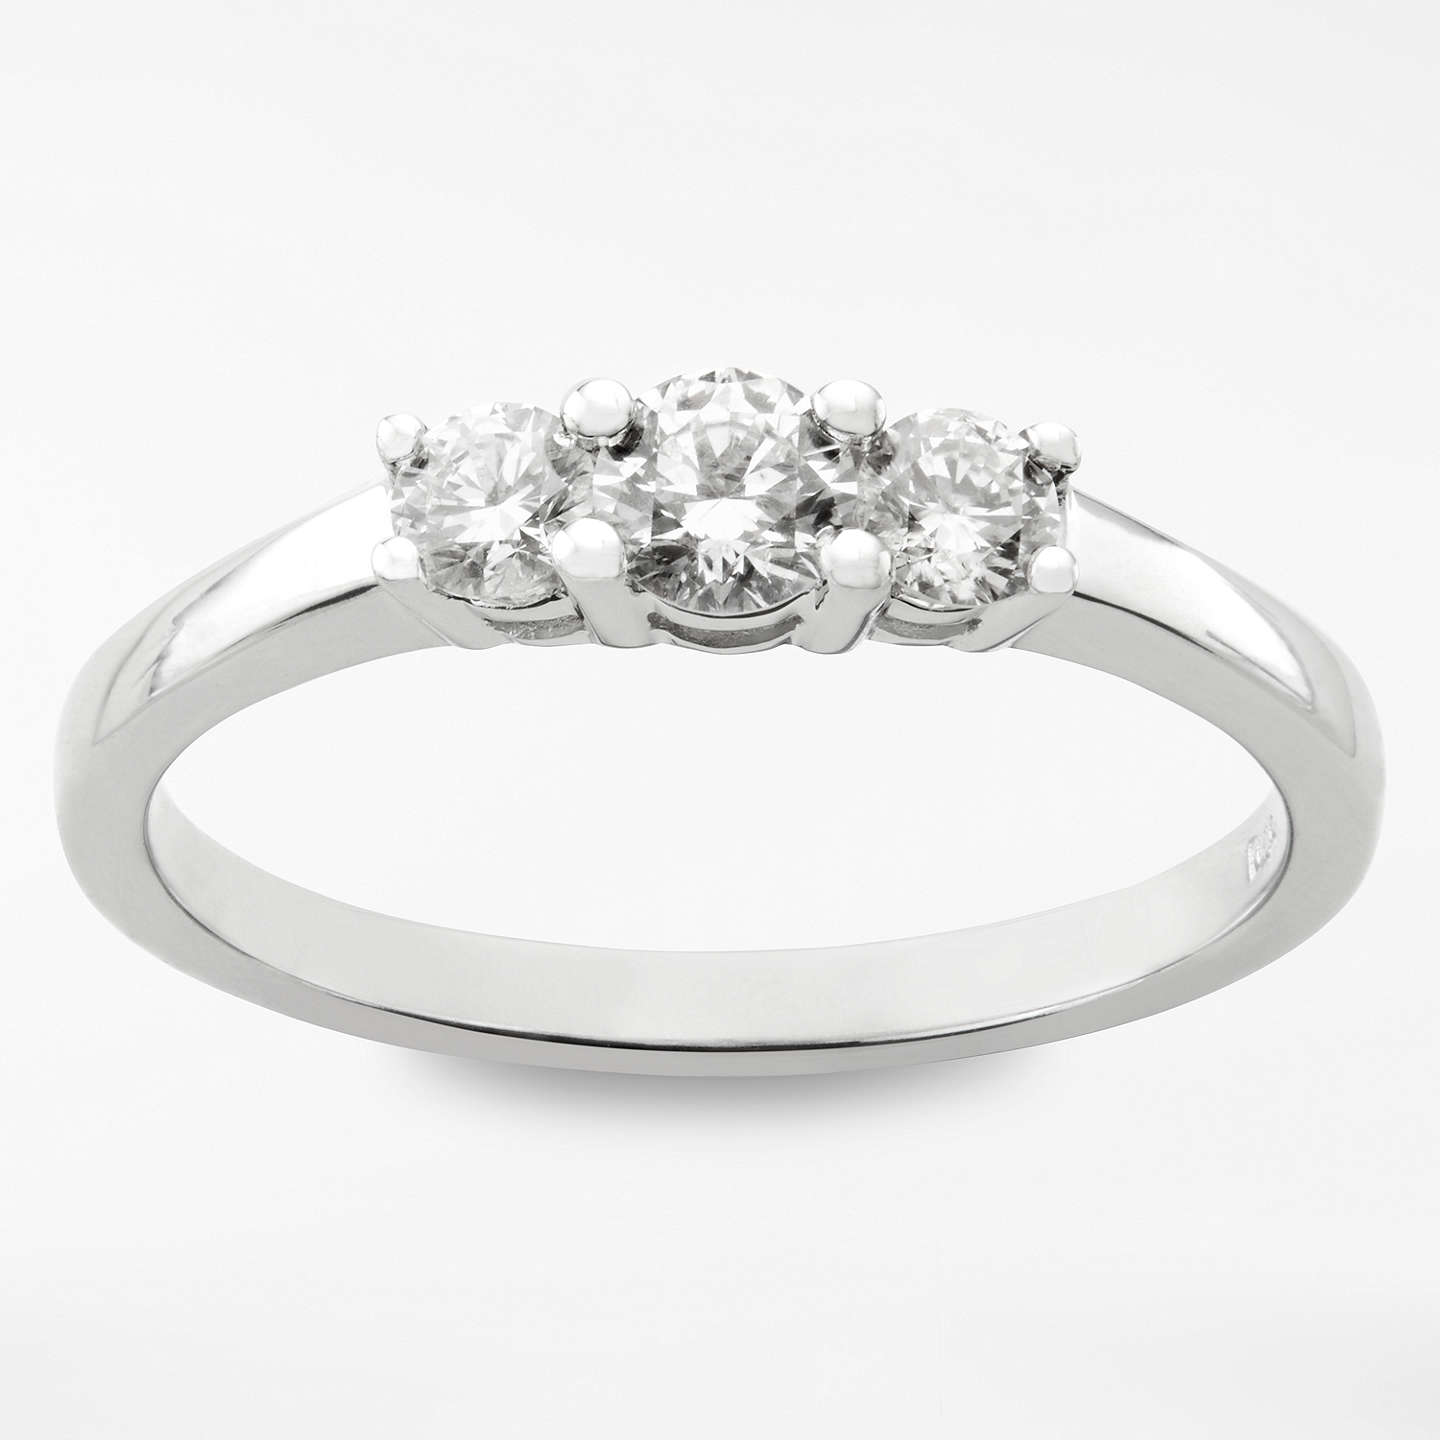 stone ring ct round three brilliant e twt in gold sidestones w d white certified diamond engagement diamonds side